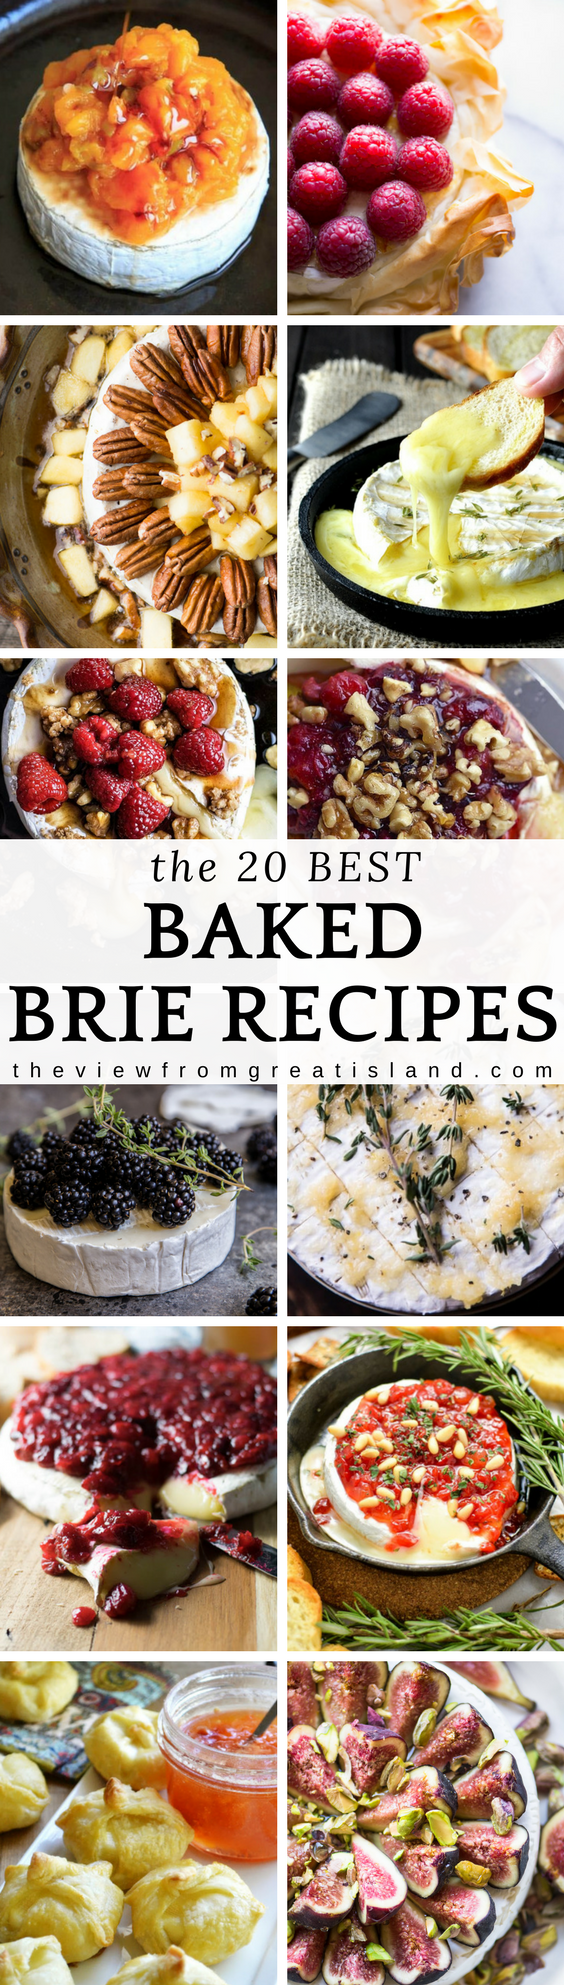 What to Make Now: Baked Brie pin